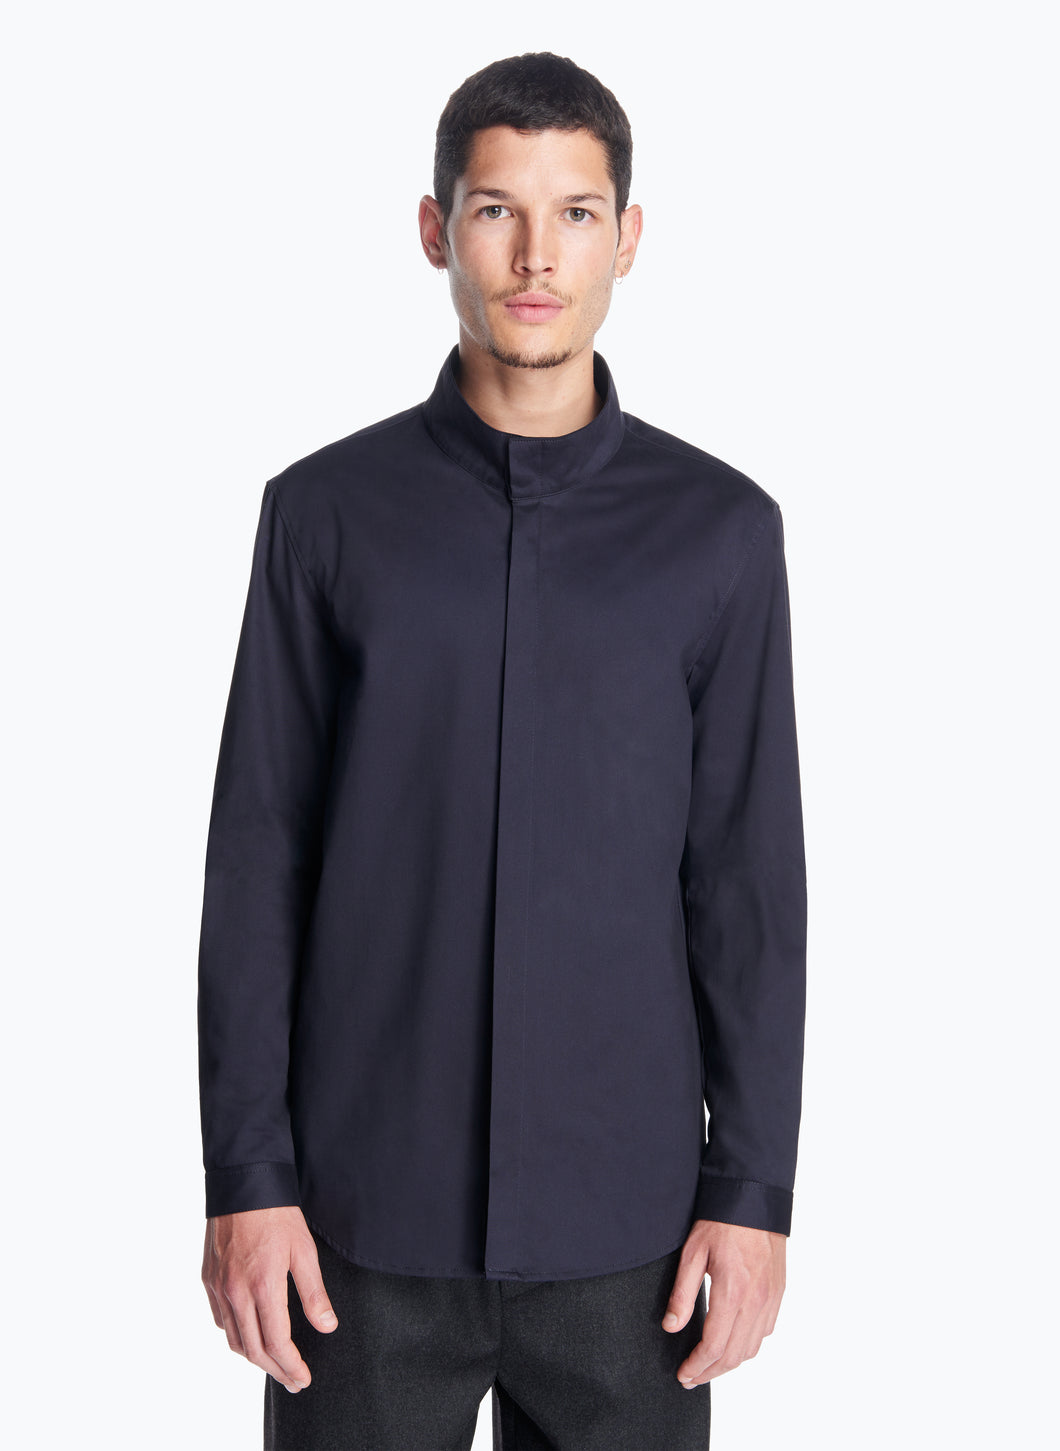 Funnel Neck Overshirt in Navy Blue Cotton Satin